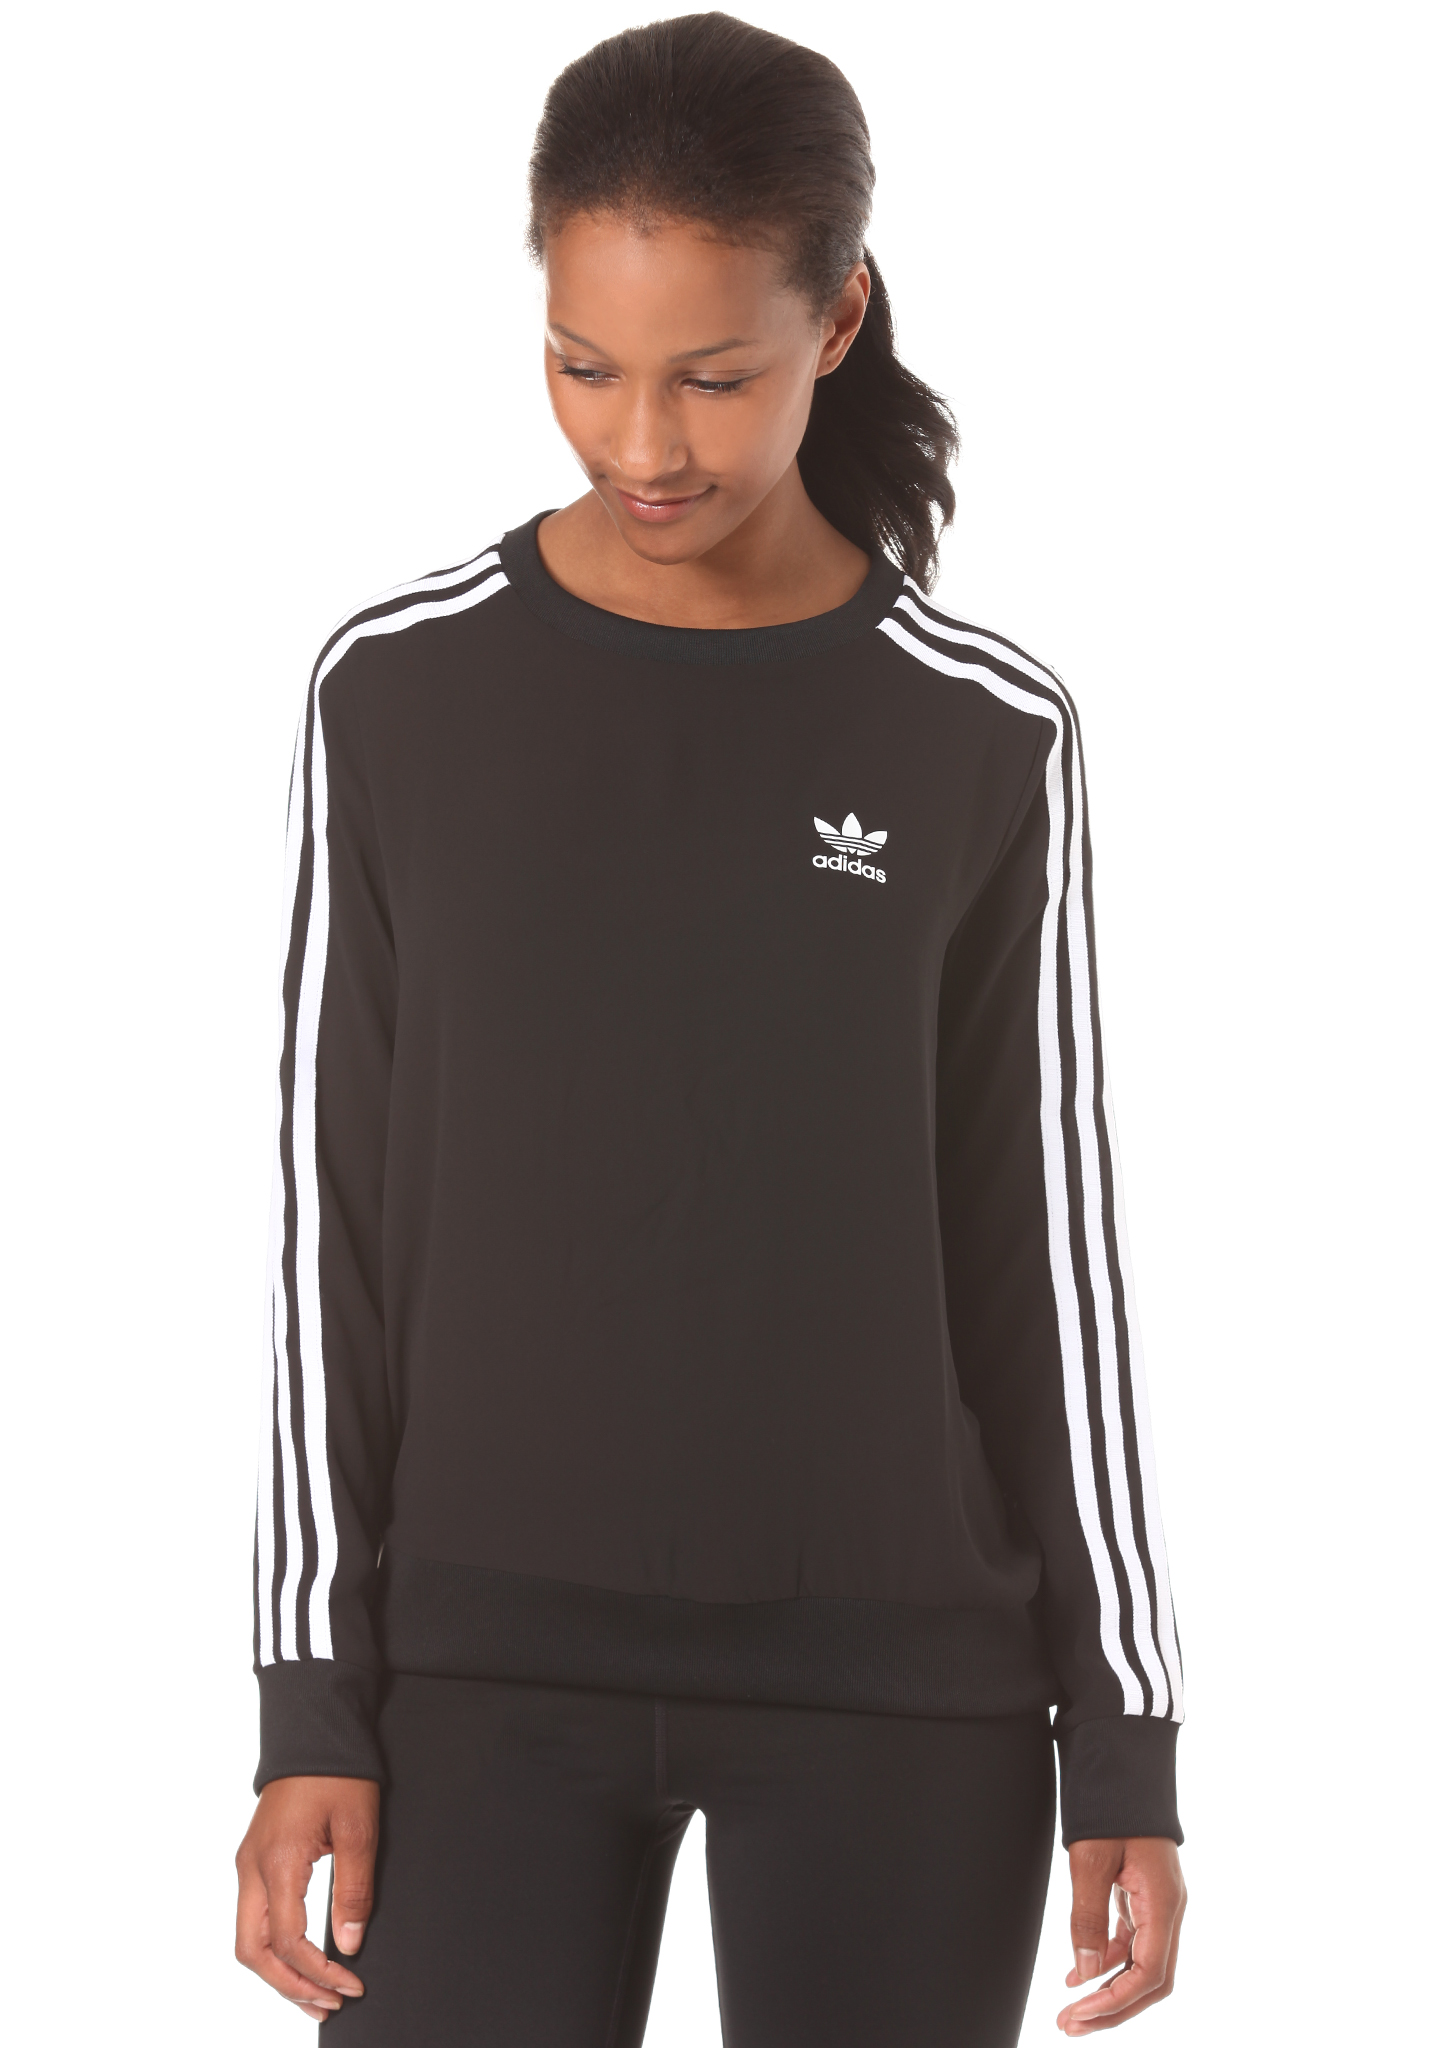 adidas 3 stripes damen sweatshirt ebay. Black Bedroom Furniture Sets. Home Design Ideas